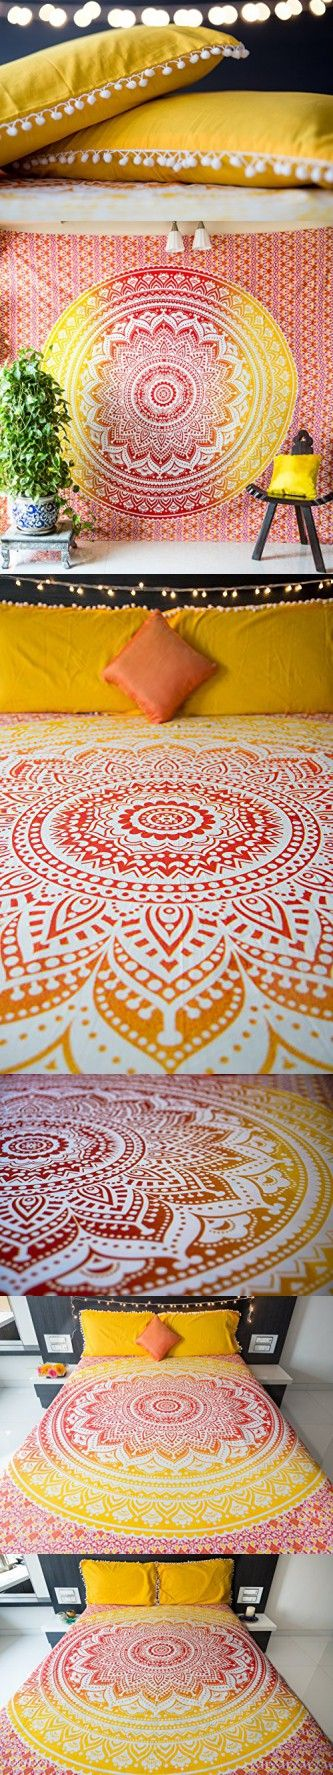 Folkulture Sunset Hue Ombre Bedspread with Pillow Covers, Indian Bohemian Tapestry Wall Hanging, Picnic Blanket or Hippie Beach Throw, Hippy Mandala Bedding for Bedroom, Yellow Queen Size Boho Spread